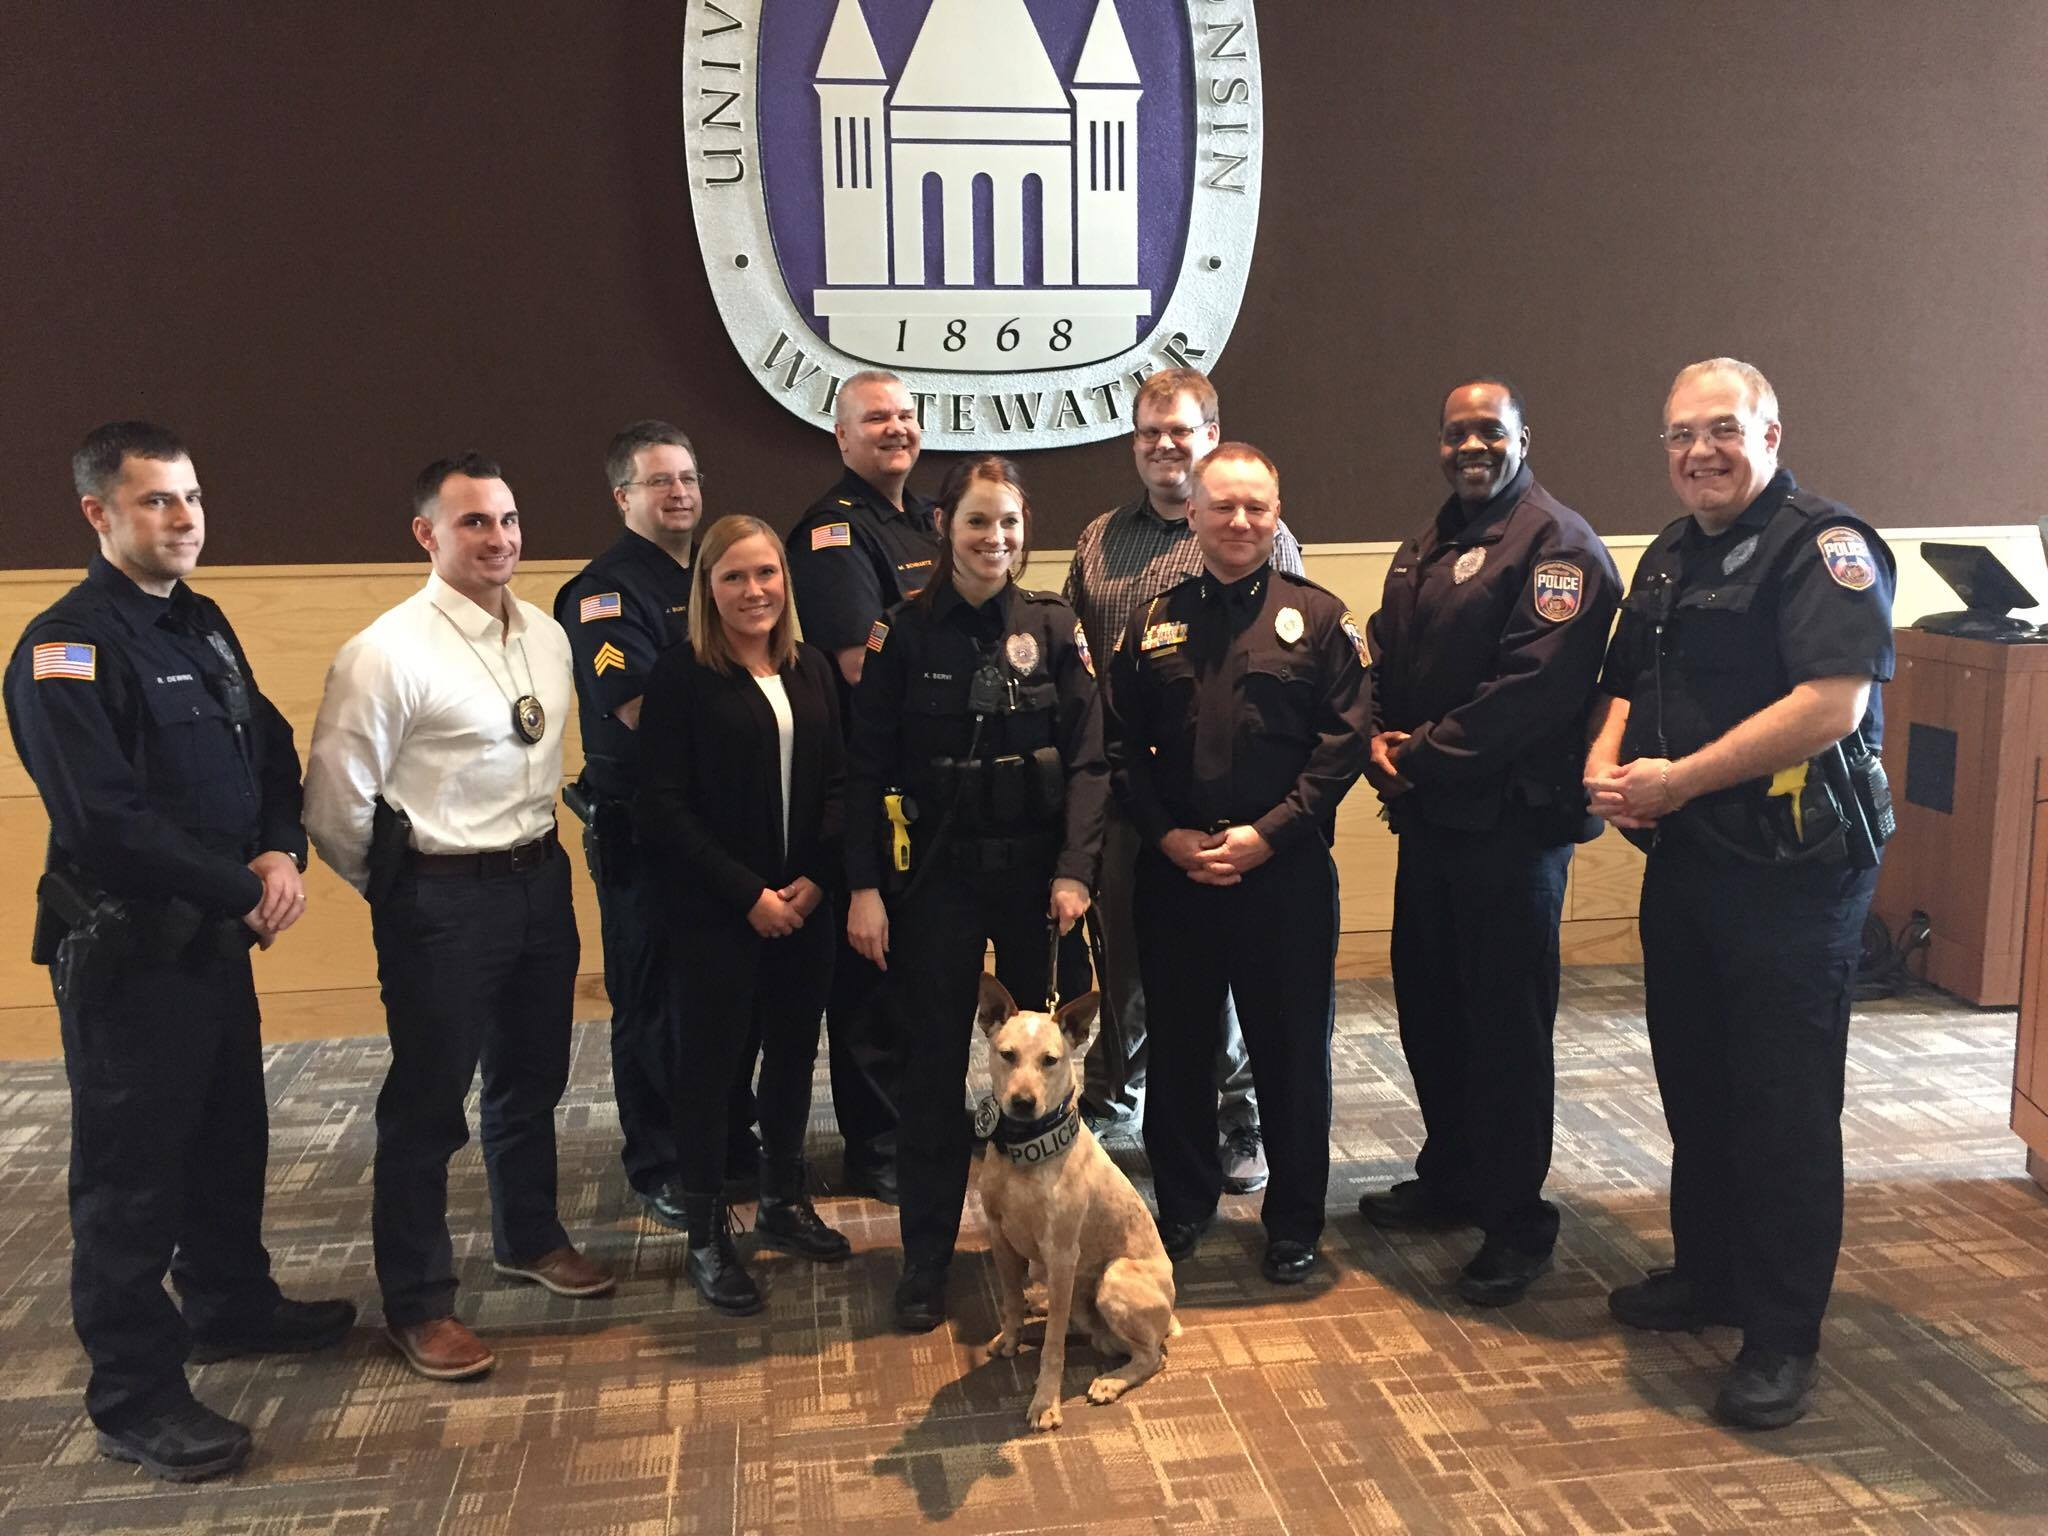 Hawk, with assistance from his partner, officer Kelsi Servi, left his inked paw-print on his official inauguration certificate at his swearing in ceremony on Feb. 1. Members of Police Services joined Hawk as he became a member of their task force.